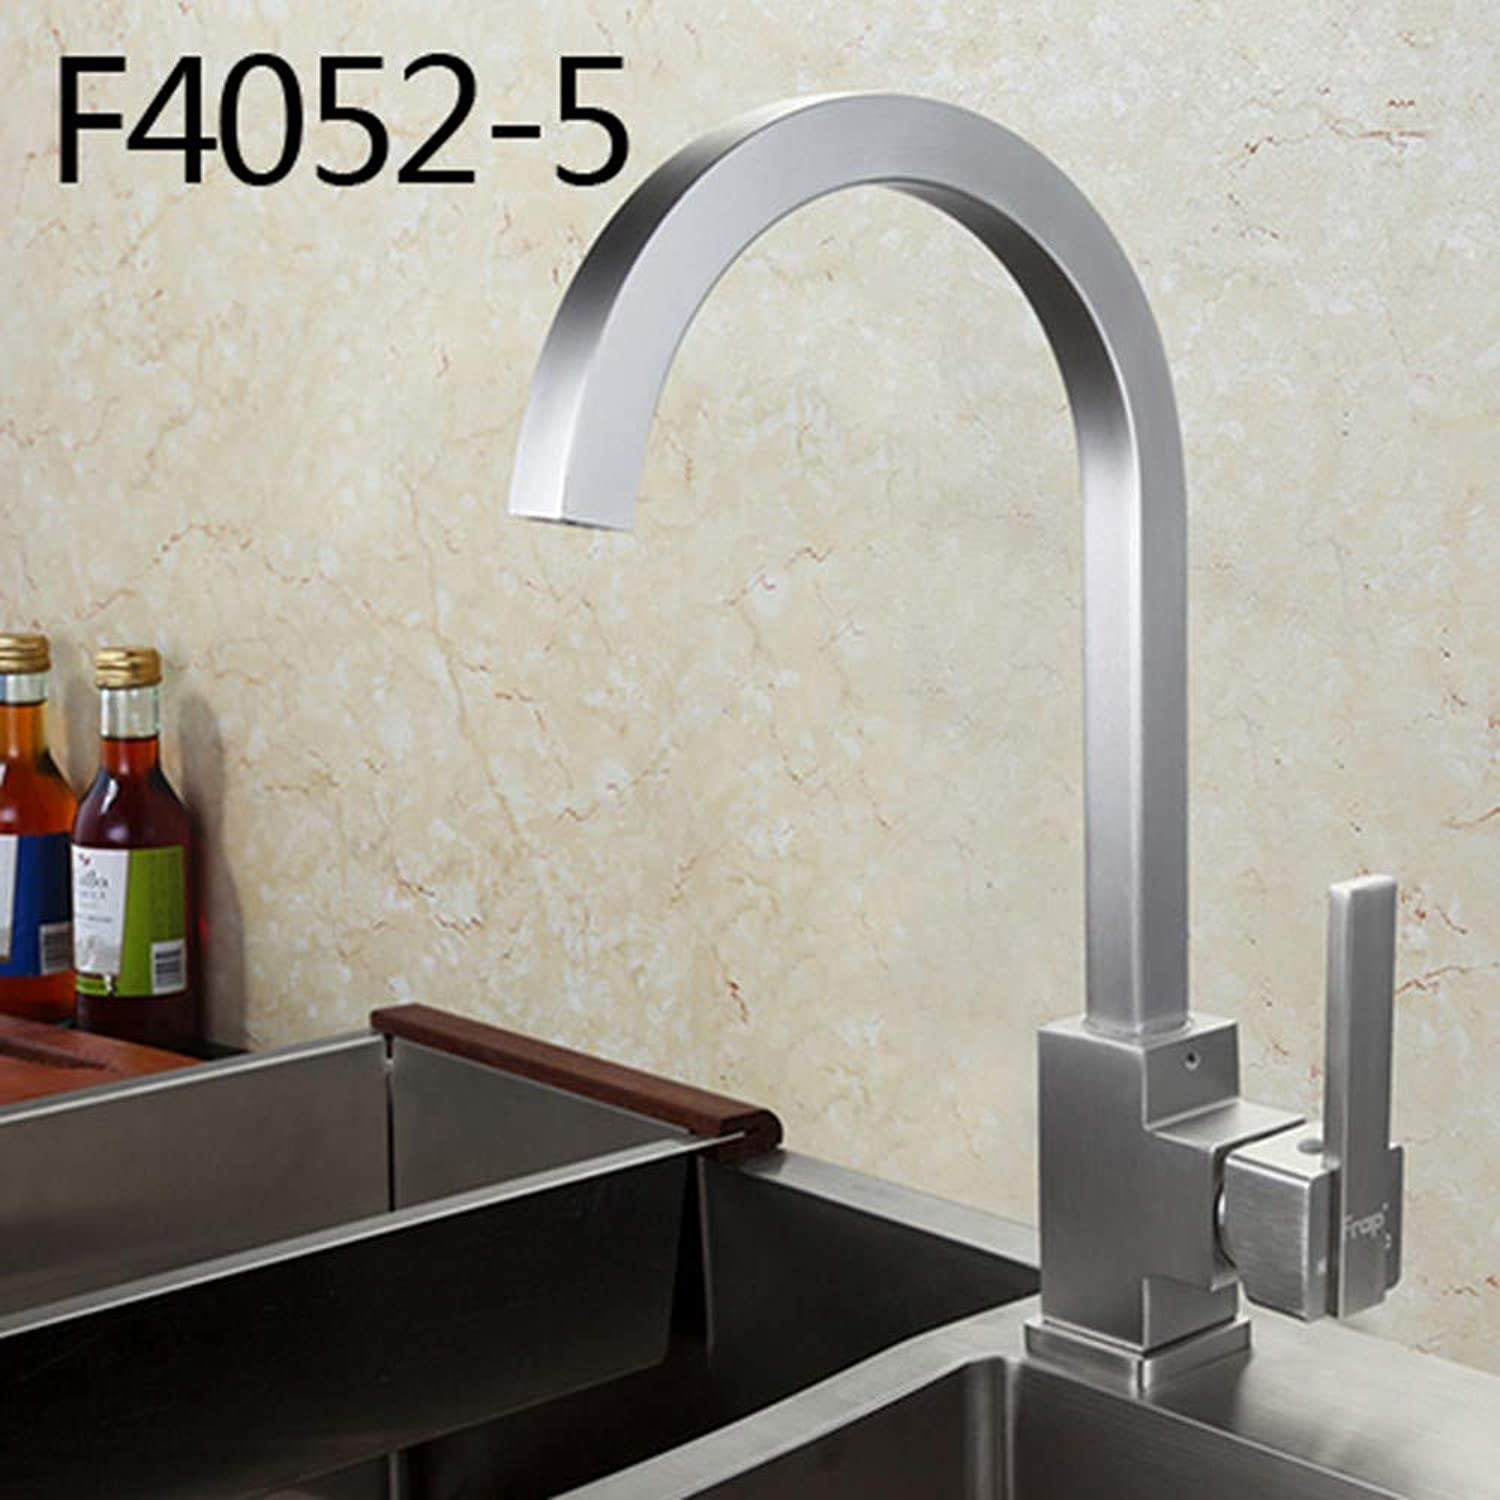 Hot and Cold Water Classic Kitchen Sink Faucet Space Aluminum Brushed Swivel Brass Water tap Mixer 360 Degree redation,F4052-5 Aluminum